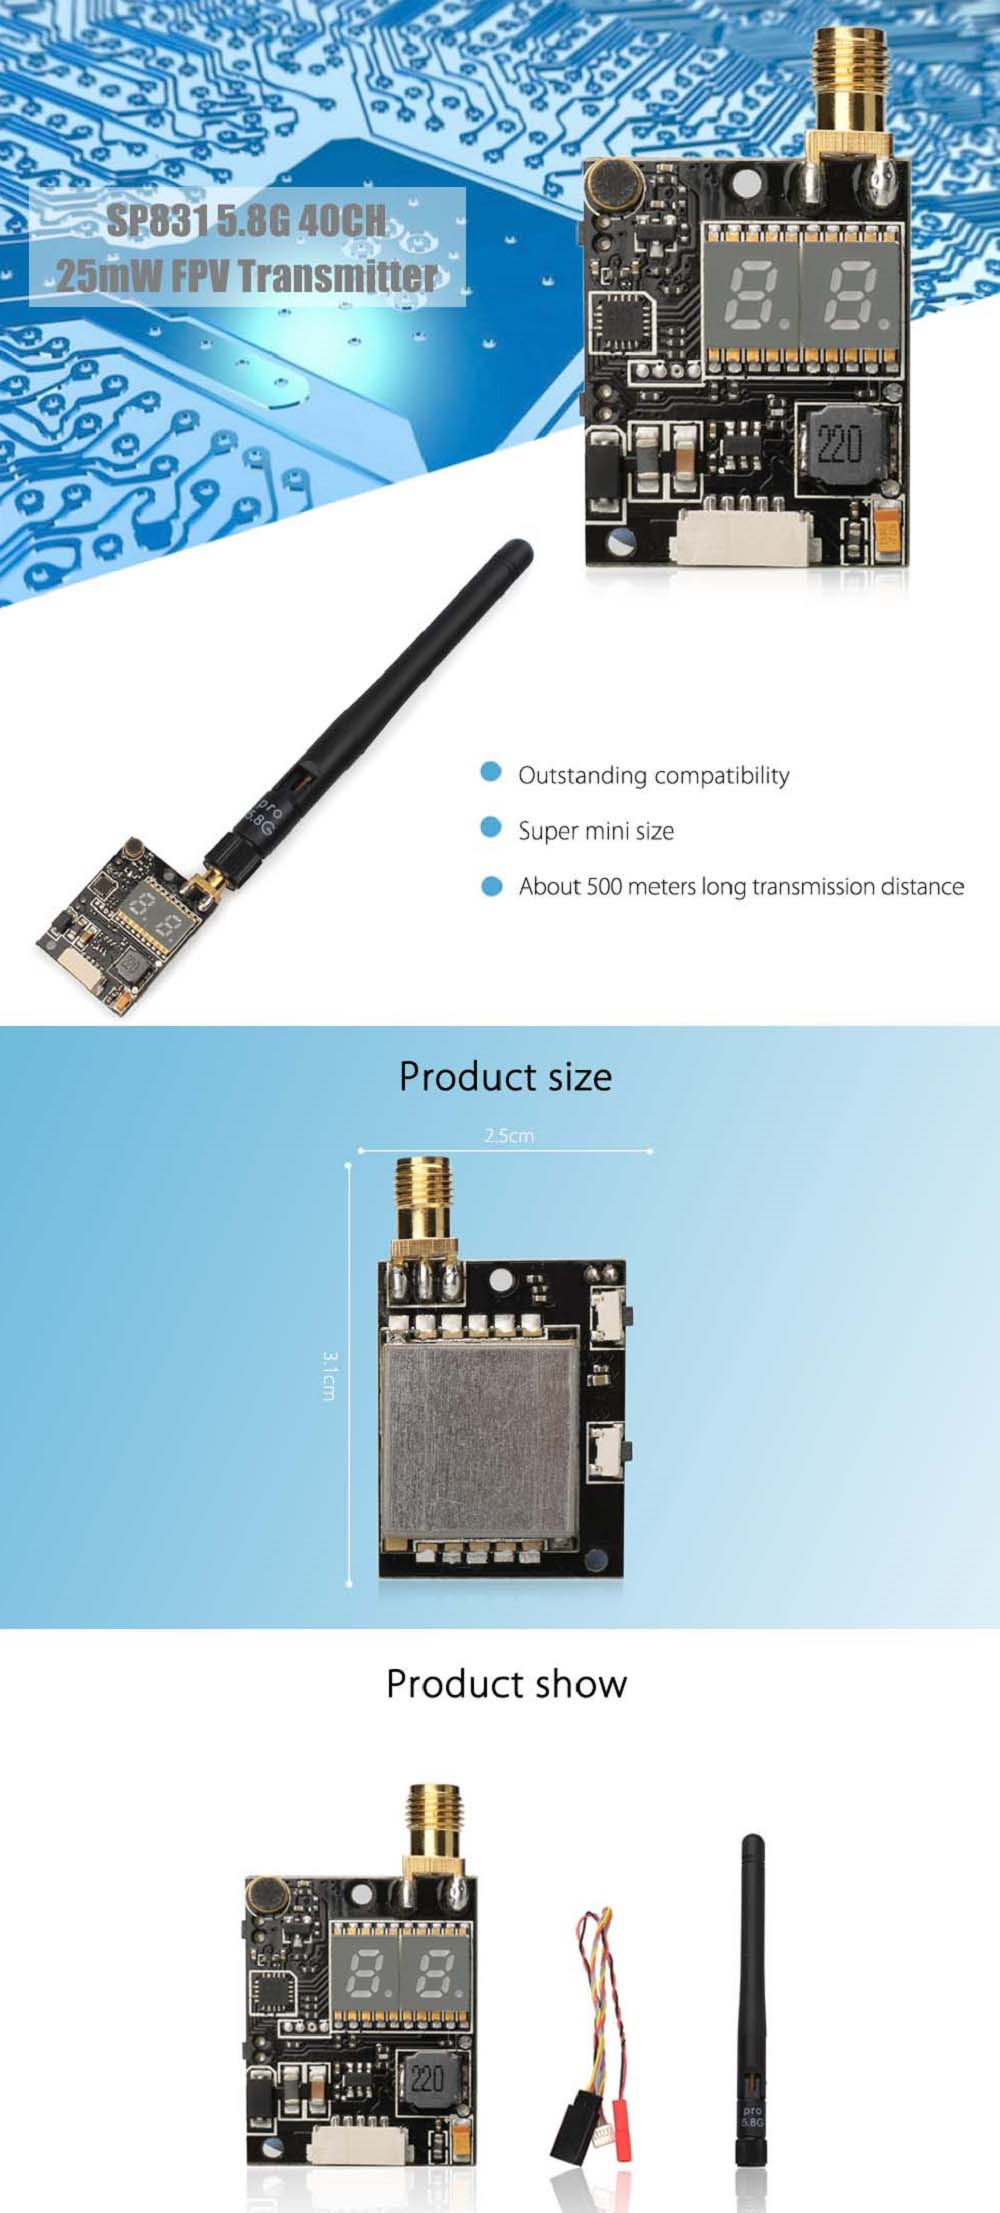 SP831 5.8G 40CH 25mW FPV Transmitter SMA Right Angle Connector